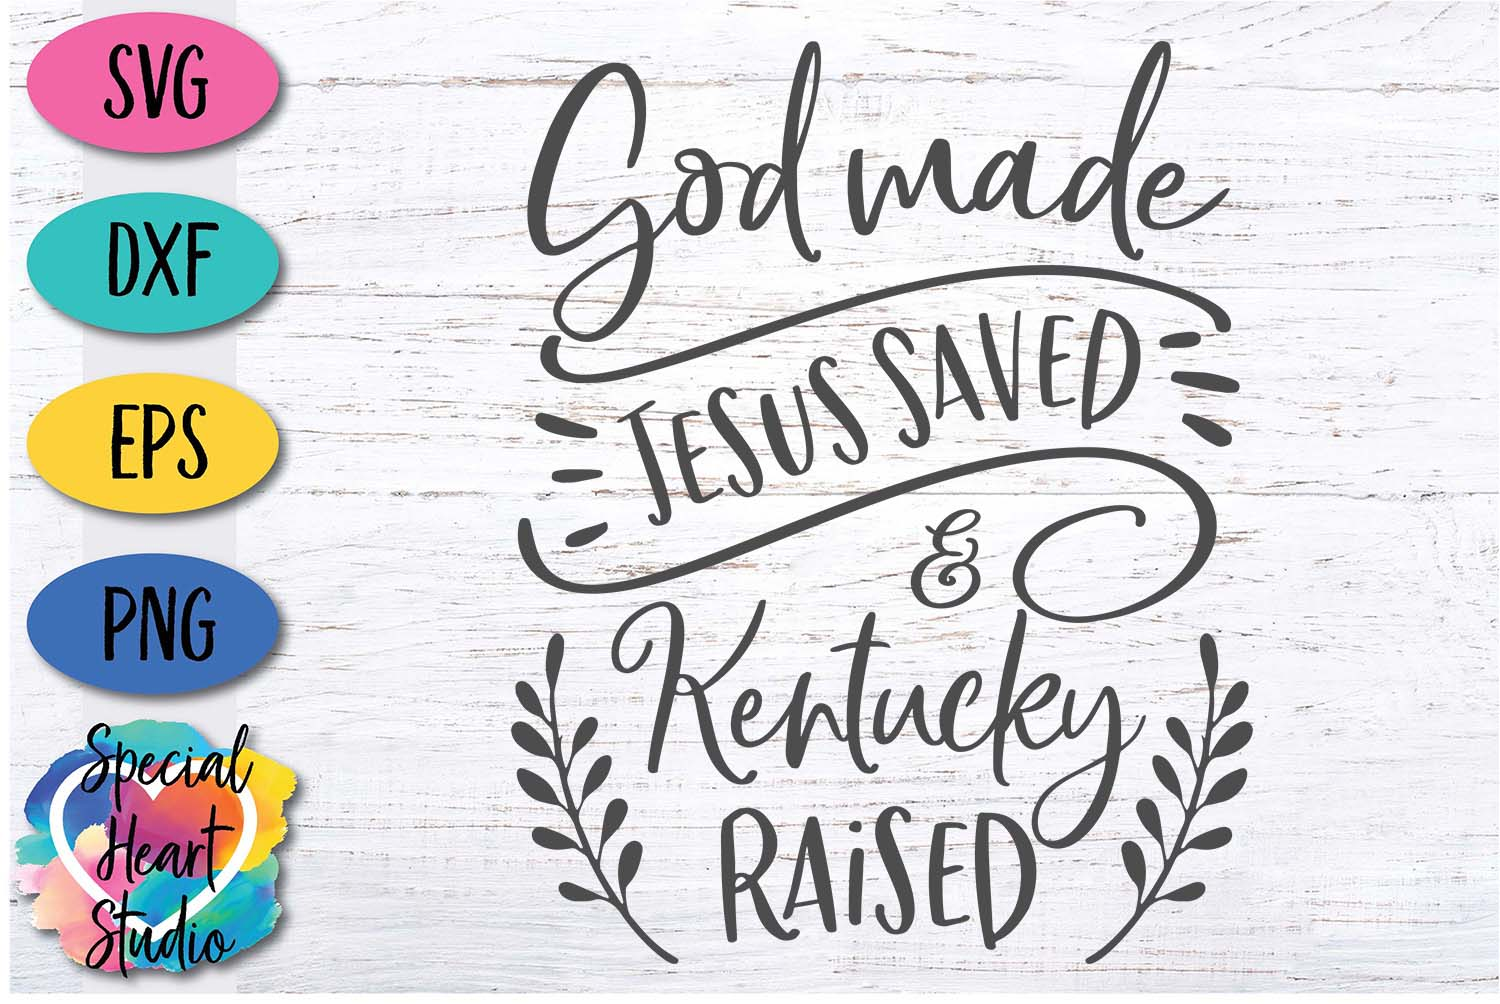 God Made Jesus Saved and Kentucky Raised - SVG Cut File example image 2